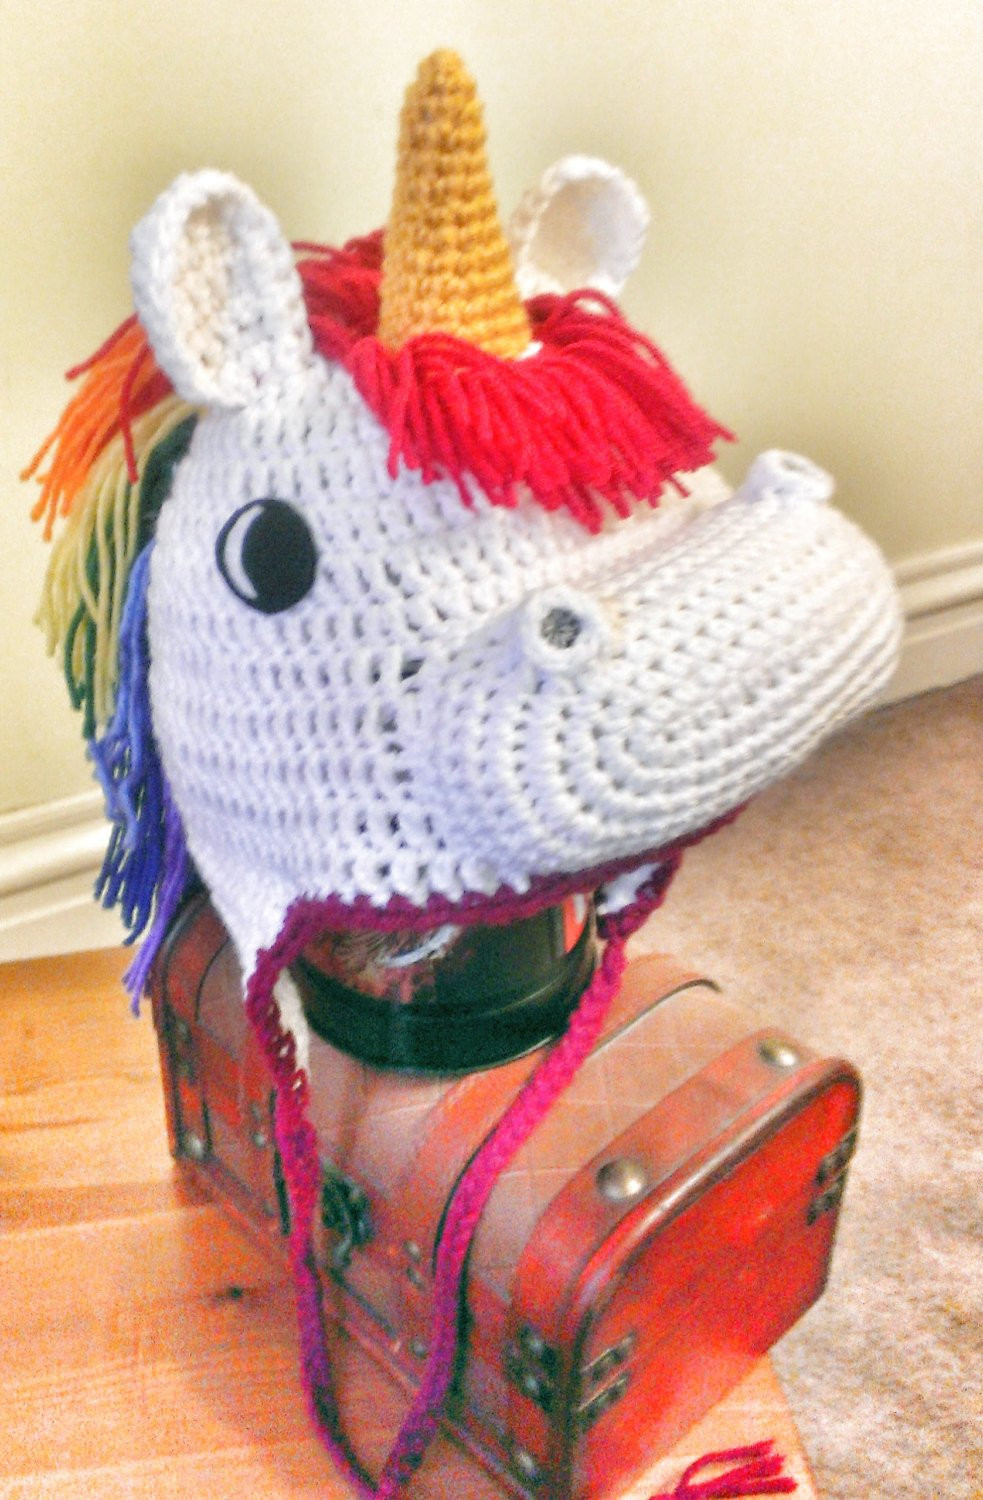 Crochet Unicorn Hat Unique Crocheted Unicorn Hat by thecrochetdisplay On Etsy Of Delightful 44 Images Crochet Unicorn Hat